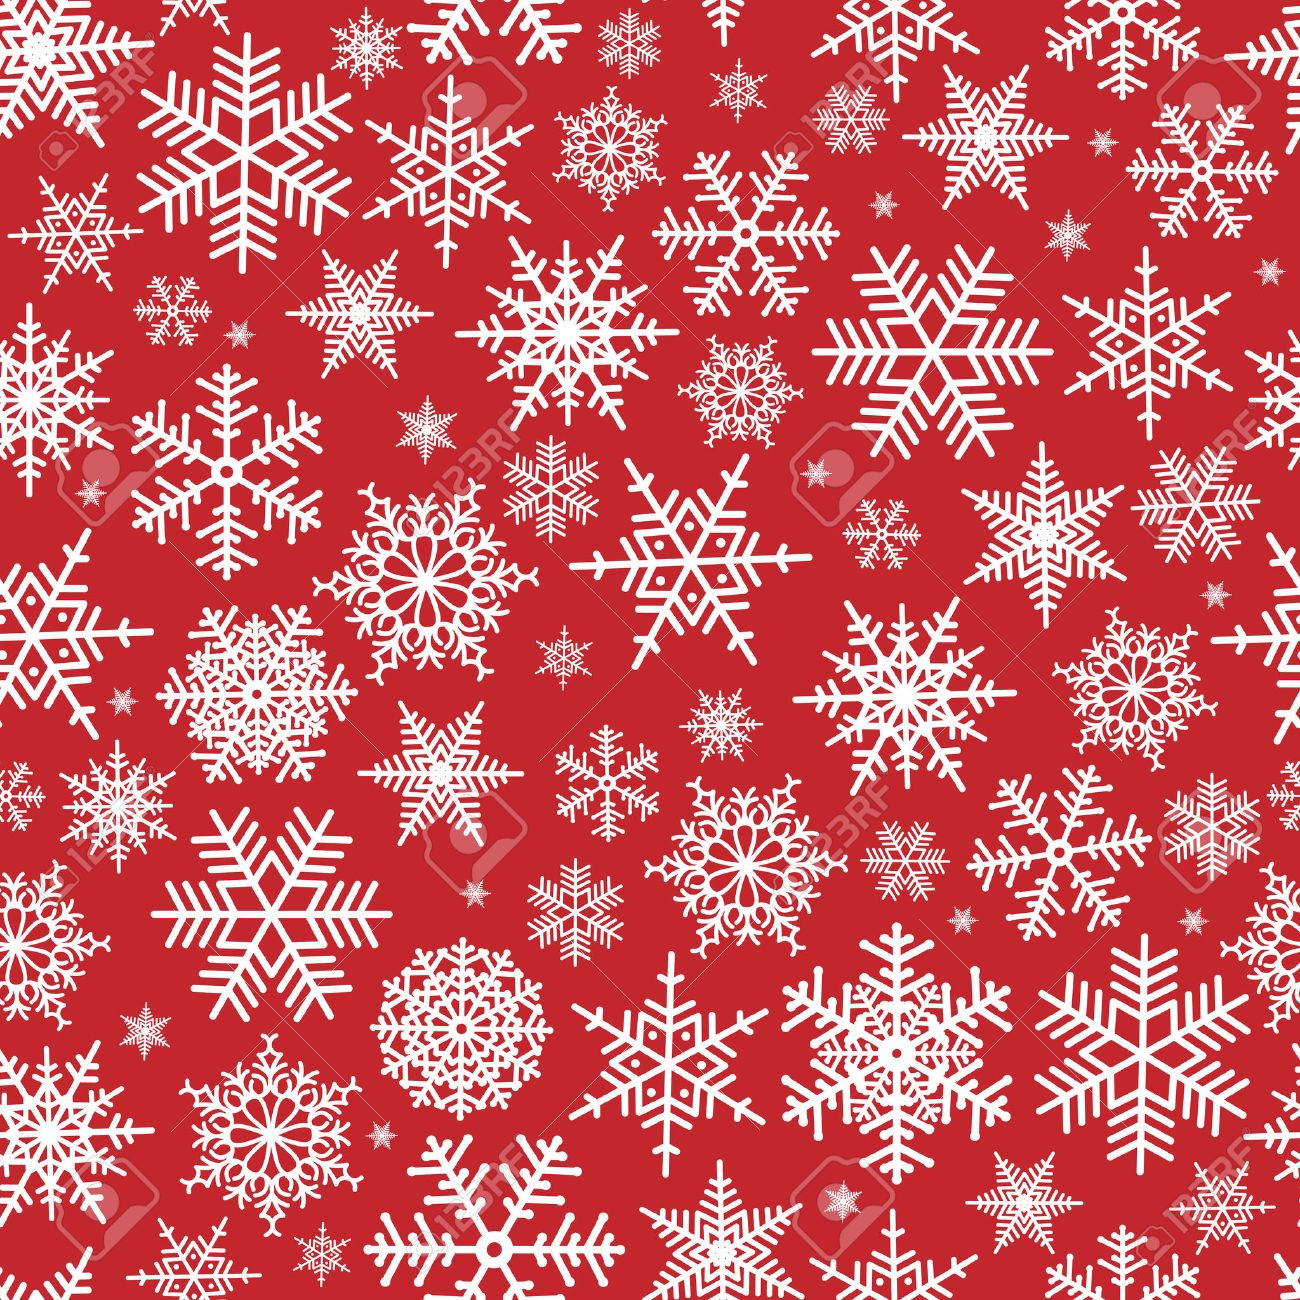 Christmas Pattern.Illustration Of Christmas Pattern With White Snowflakes On Red